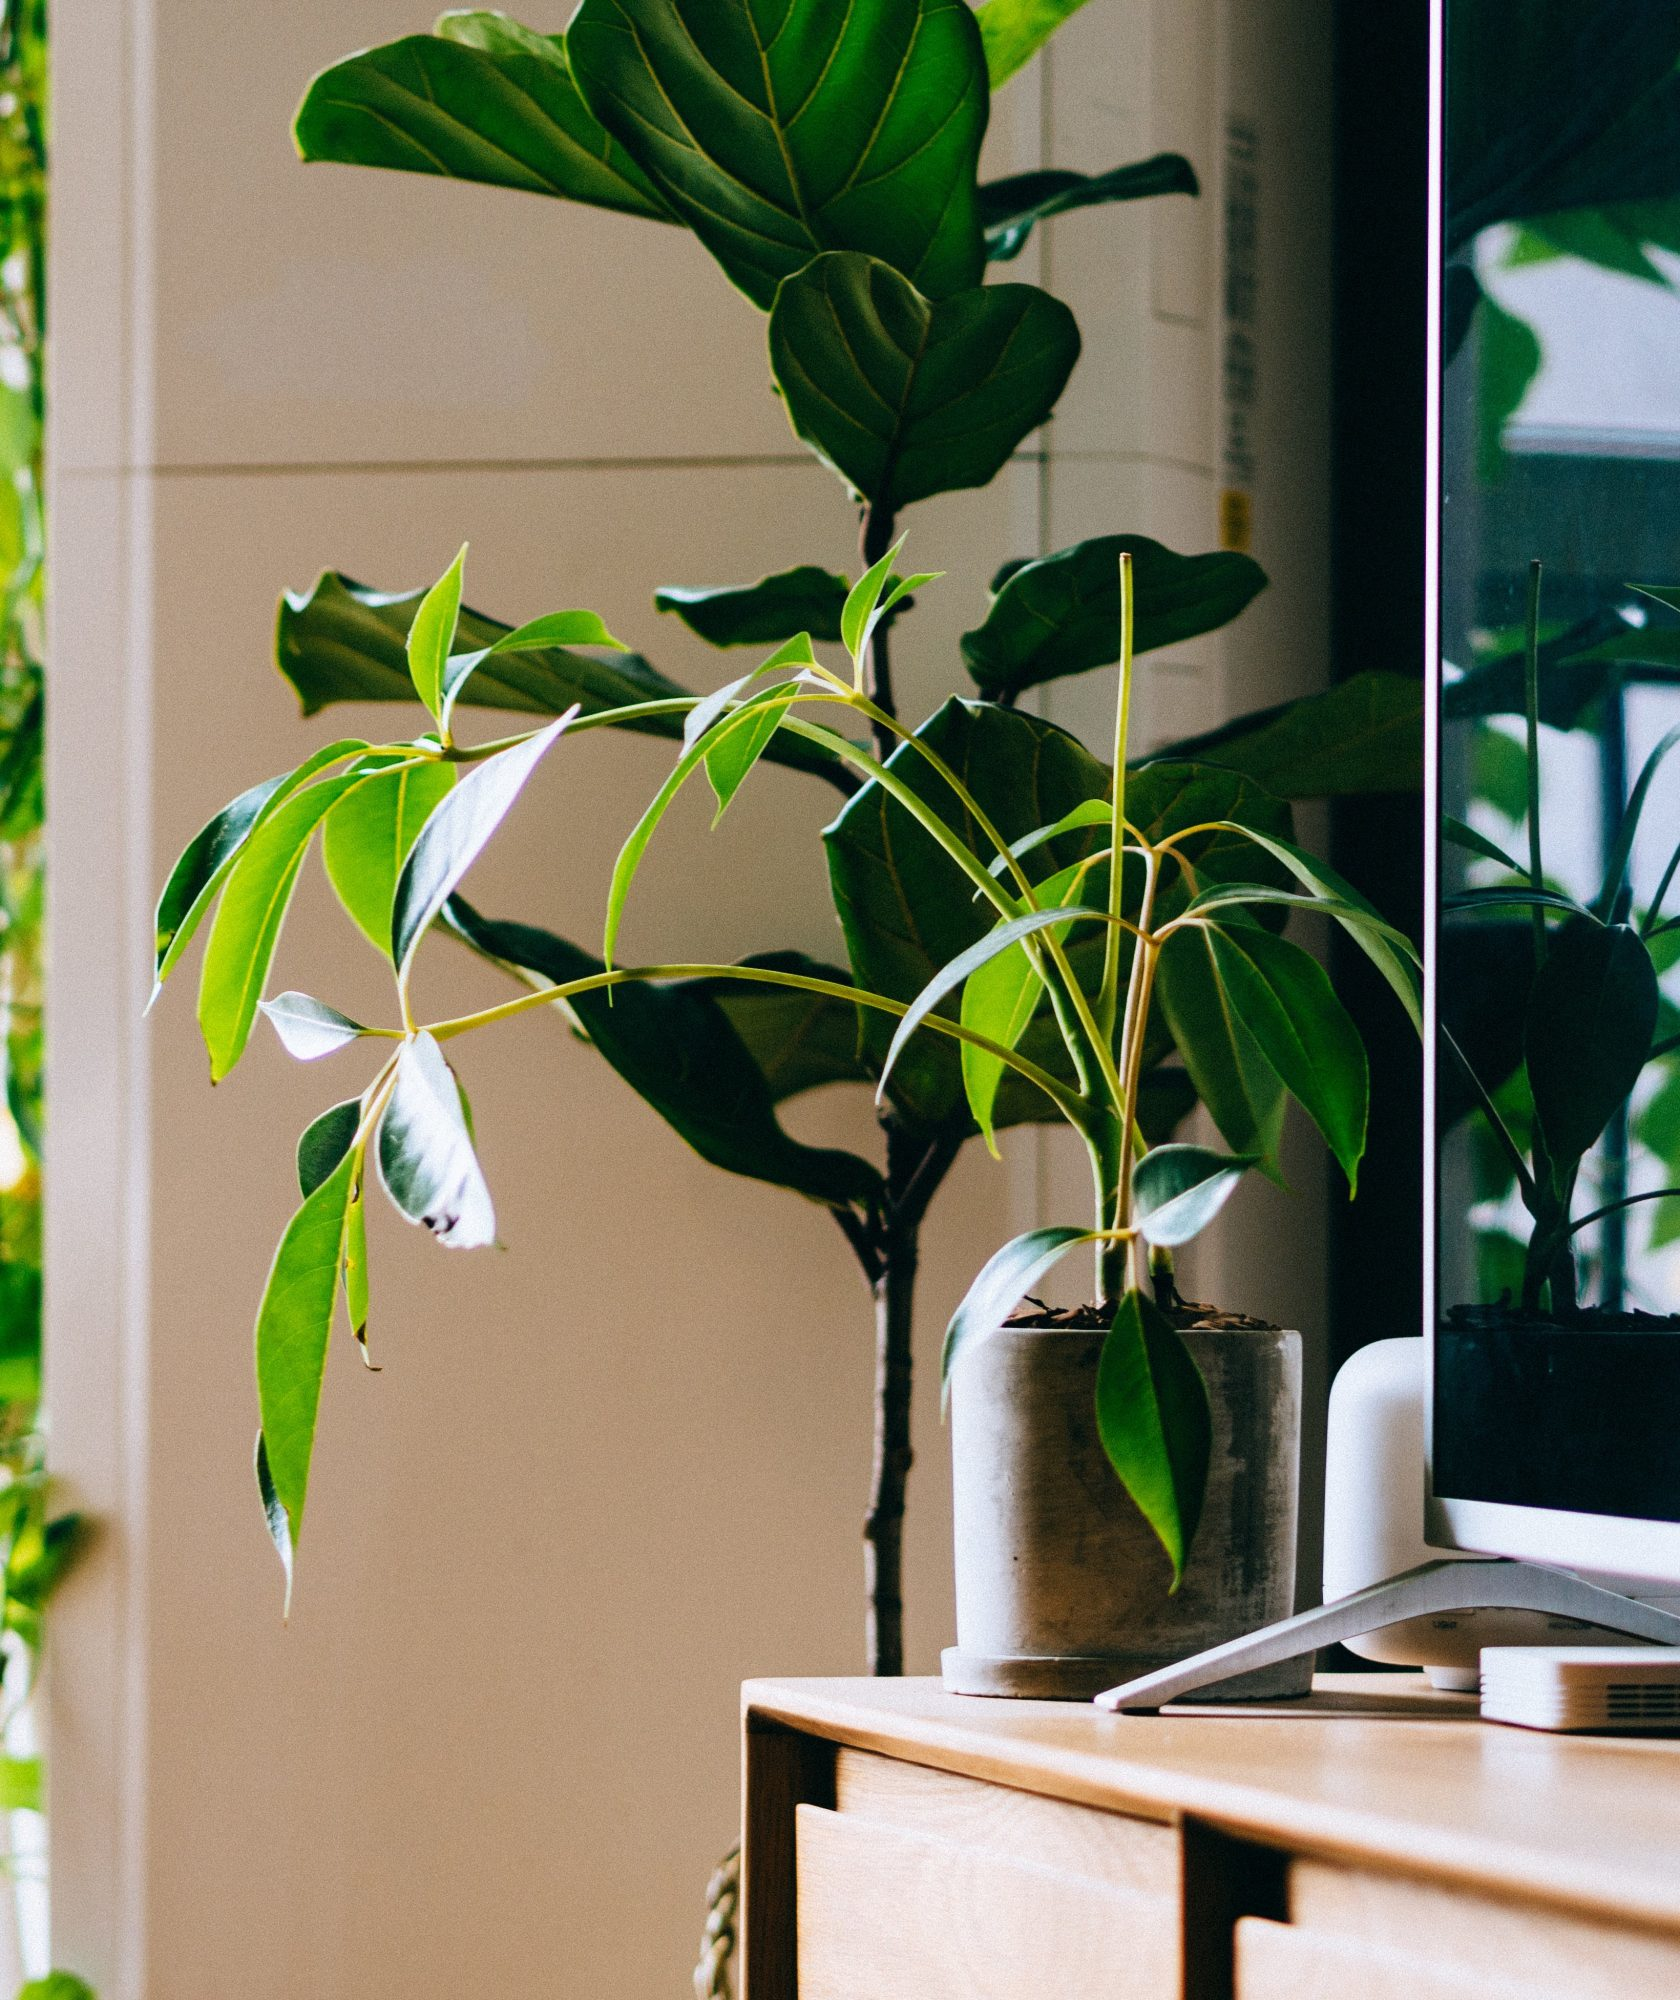 The Surprising Health Benefits of Owning House Plants(and How to Incorporate Them Into Your Decor)